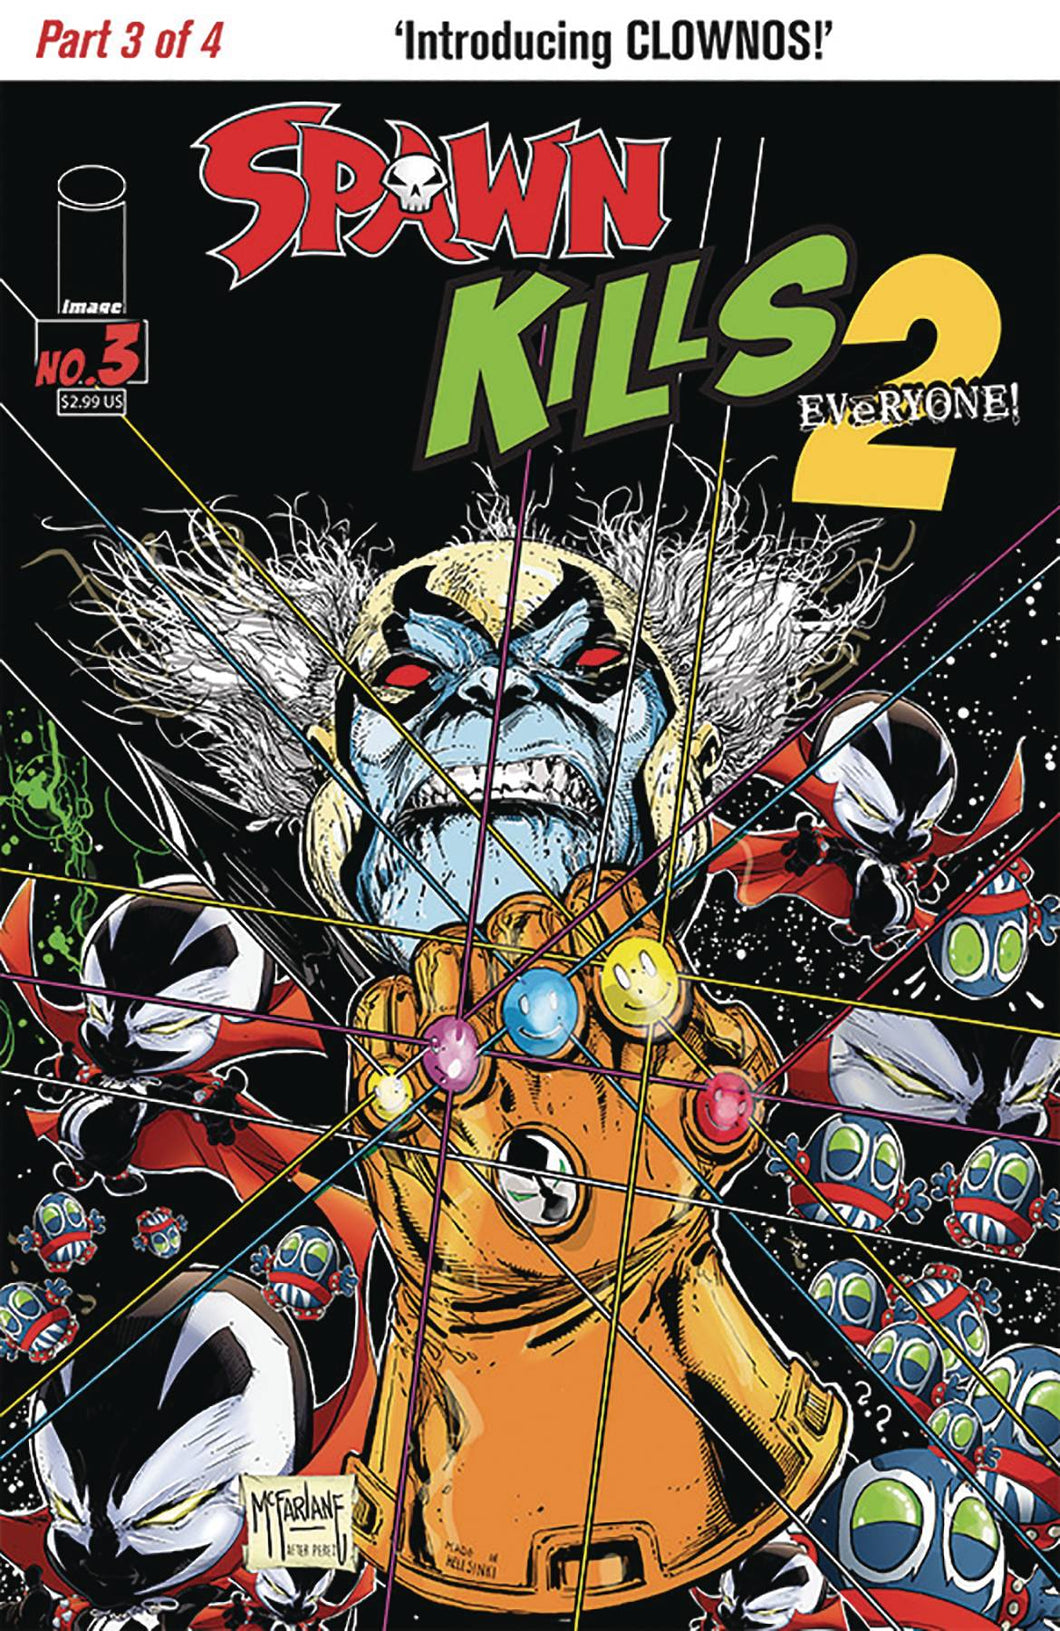 SPAWN KILLS EVERYONE TOO #3 (OF 4) CVR A MCFARLANE 02/13/19 FOC 01/21/19